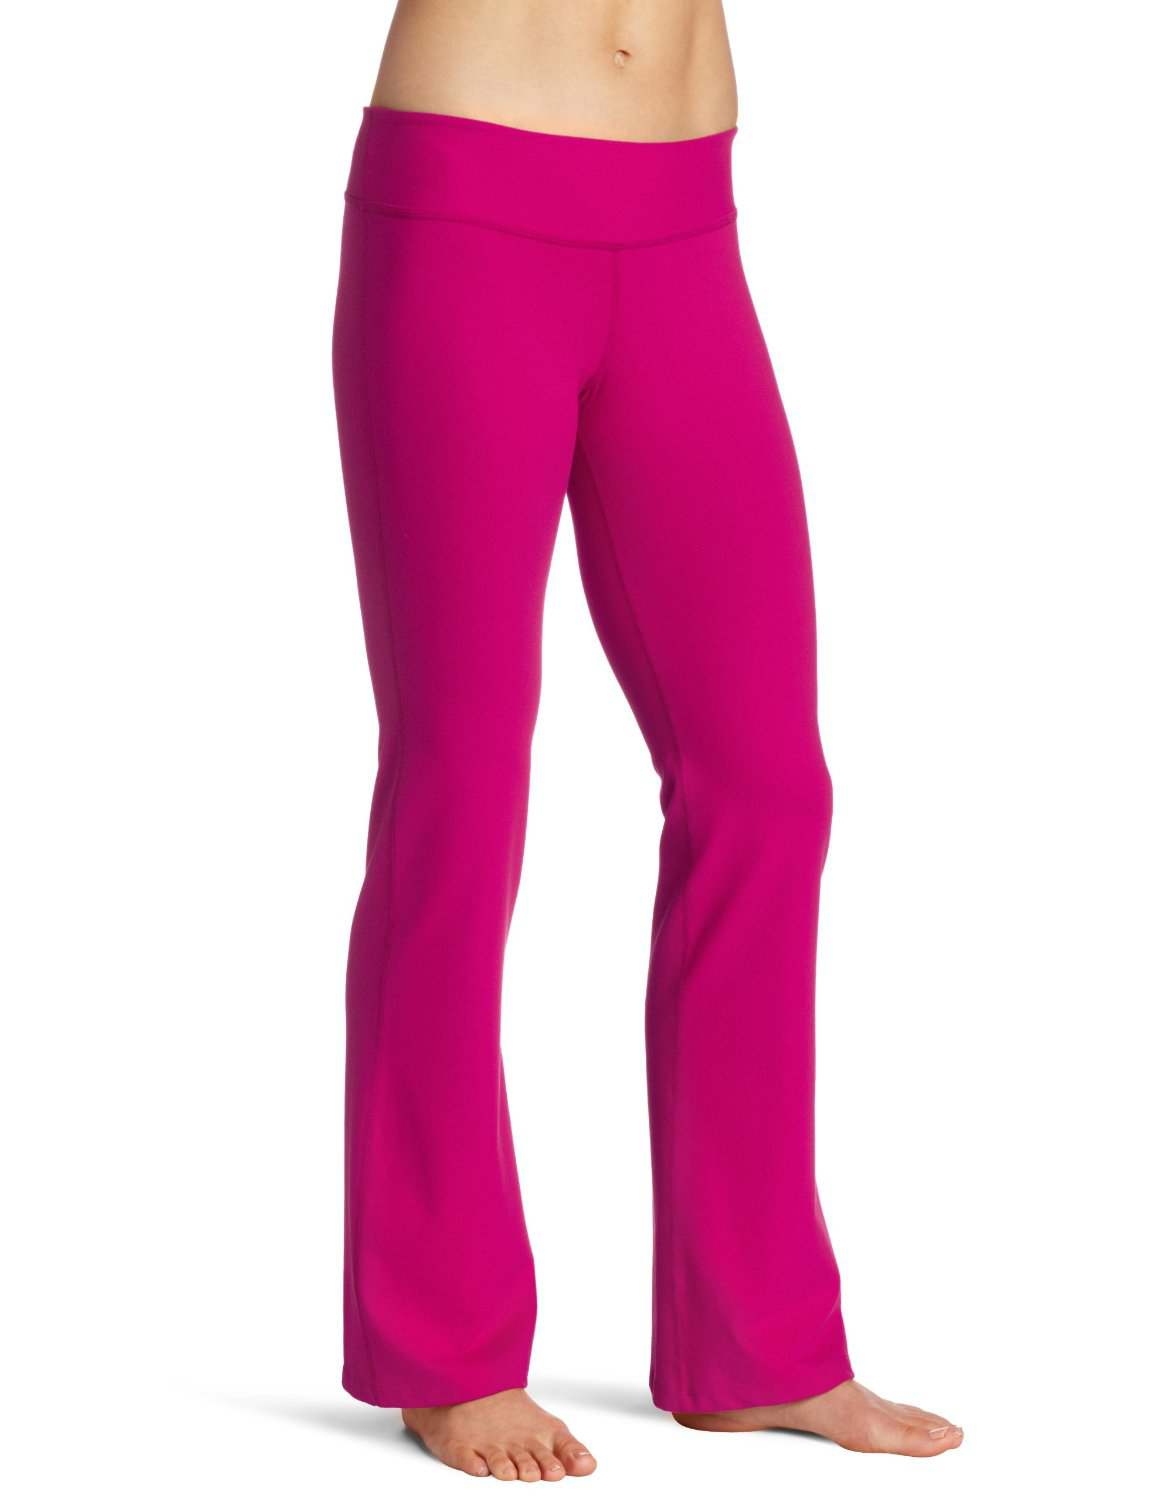 Pink Yoga Pants | PINK! Pink Shoes, Pink Accessories and Pink Stuff